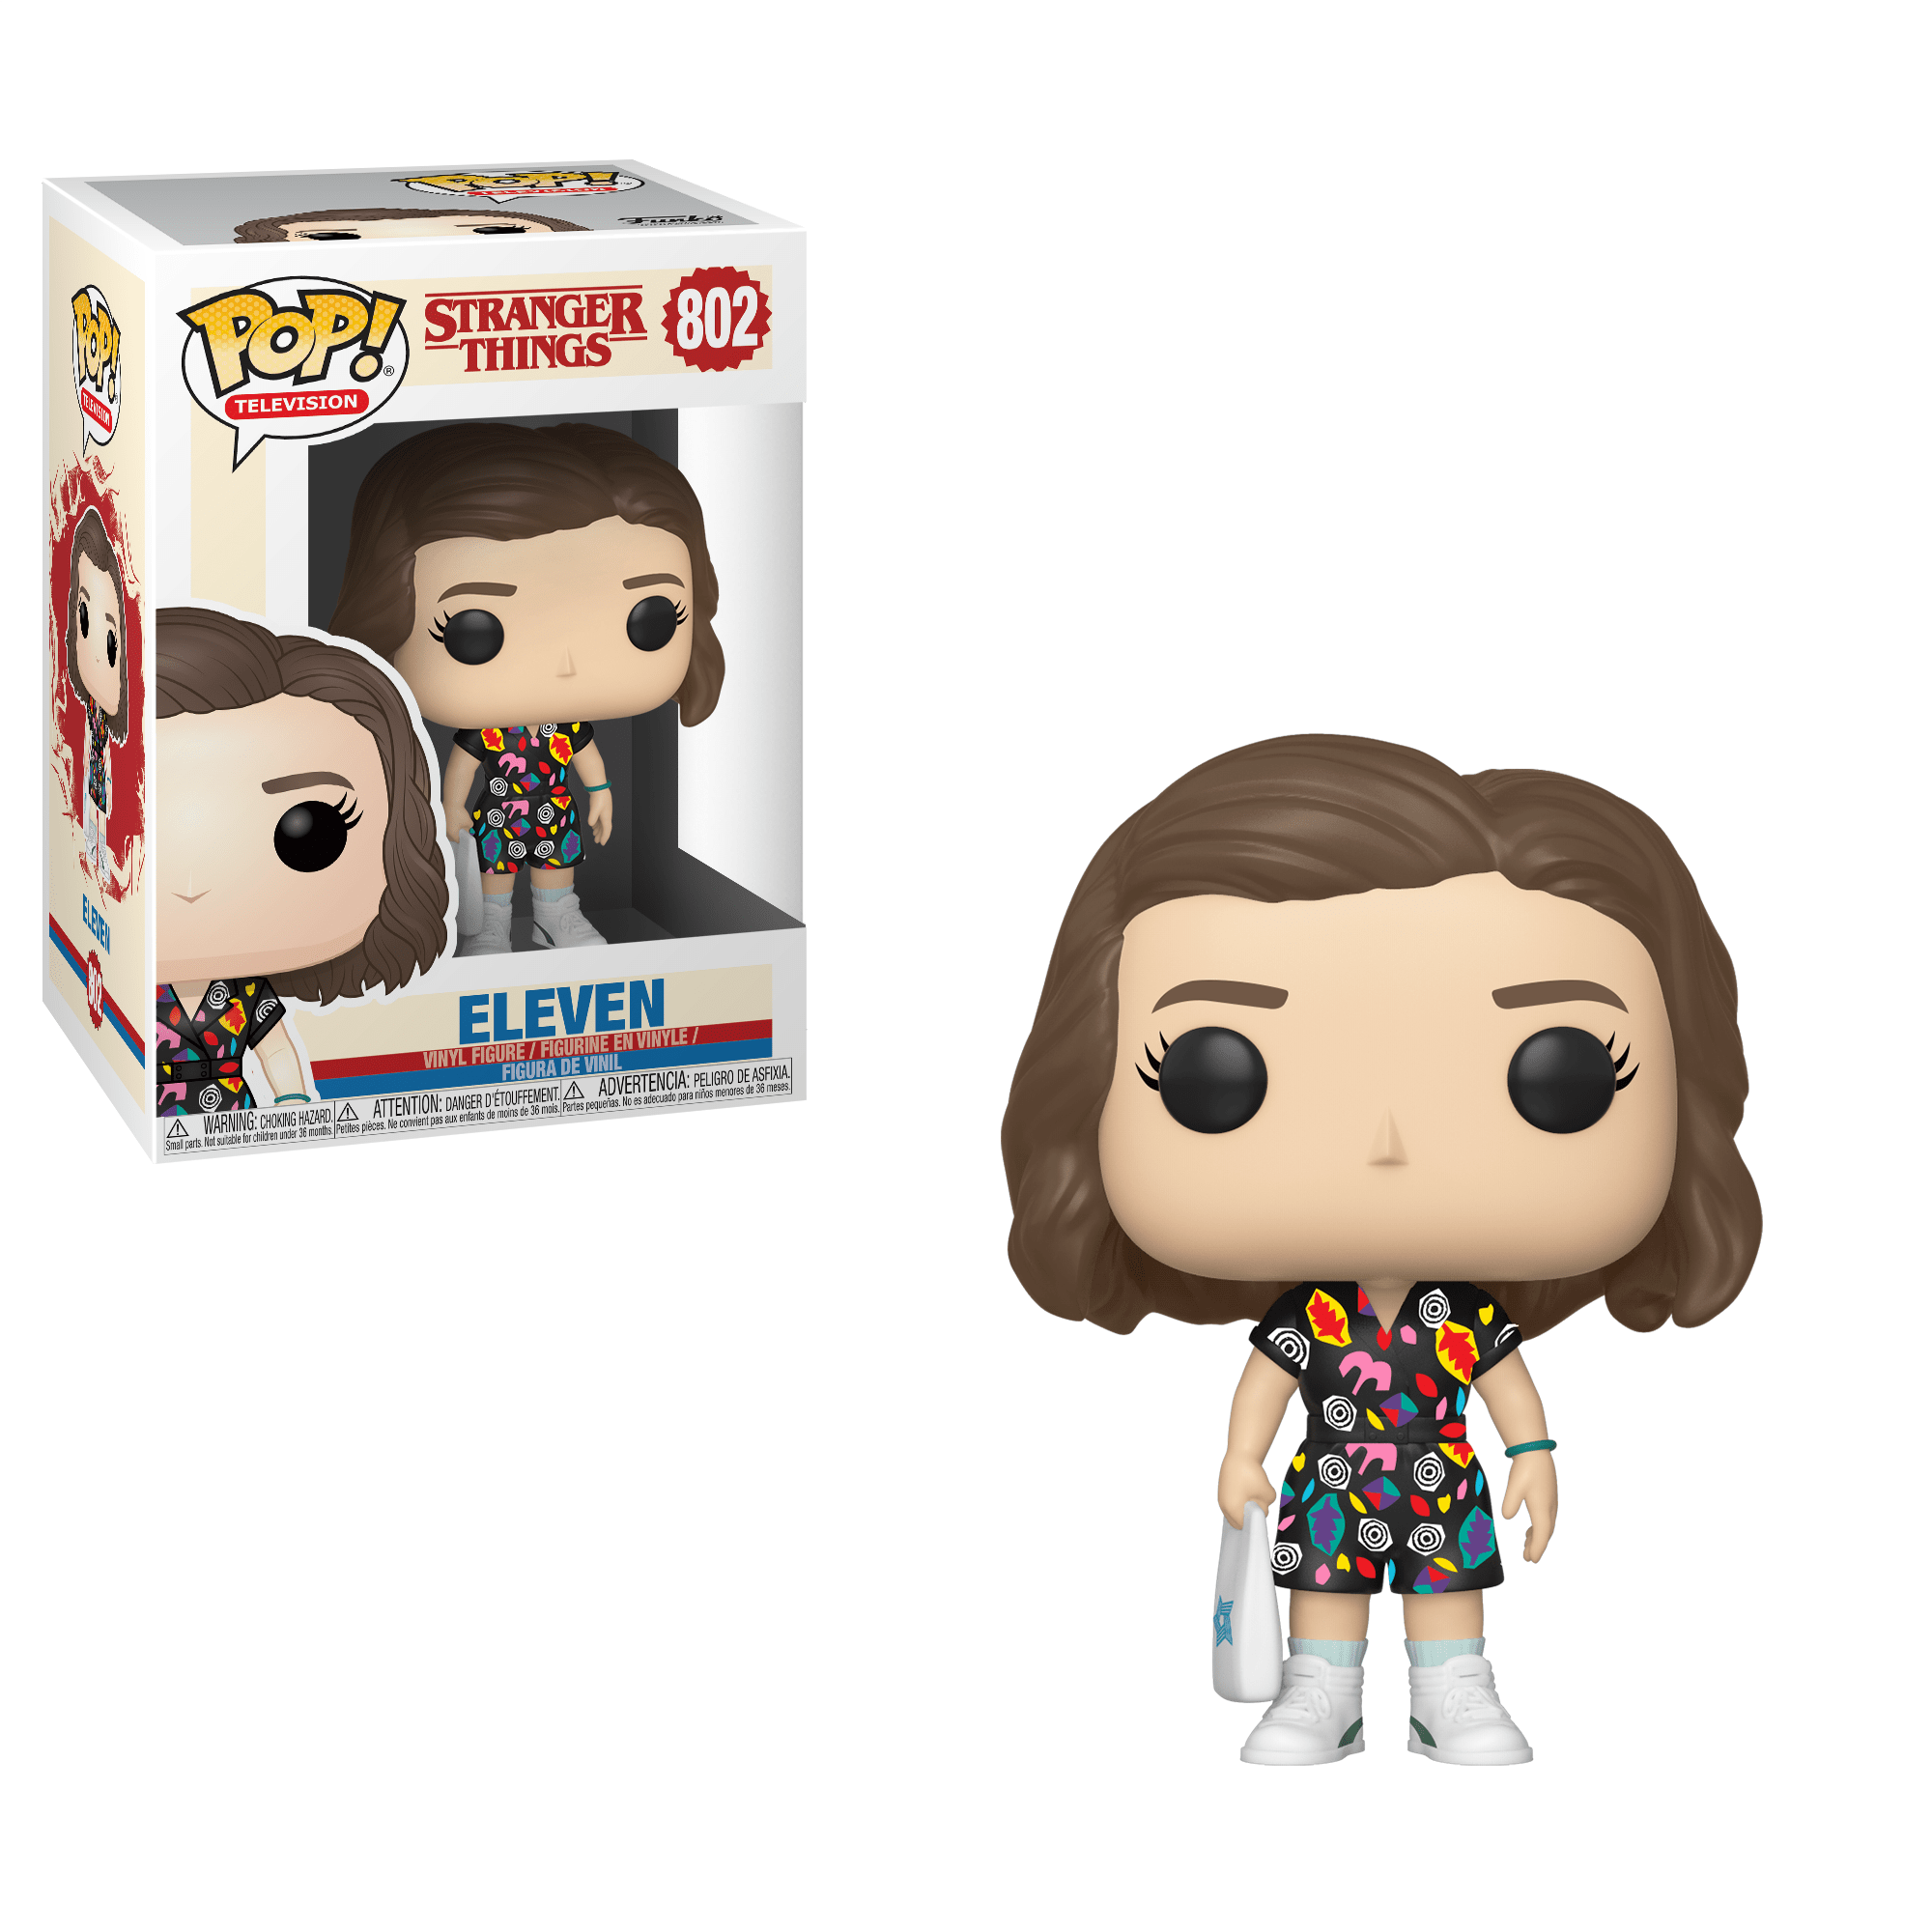 Stranger Things Eleven Funko Pop Vinyl Figur (Mall Outfit) #802